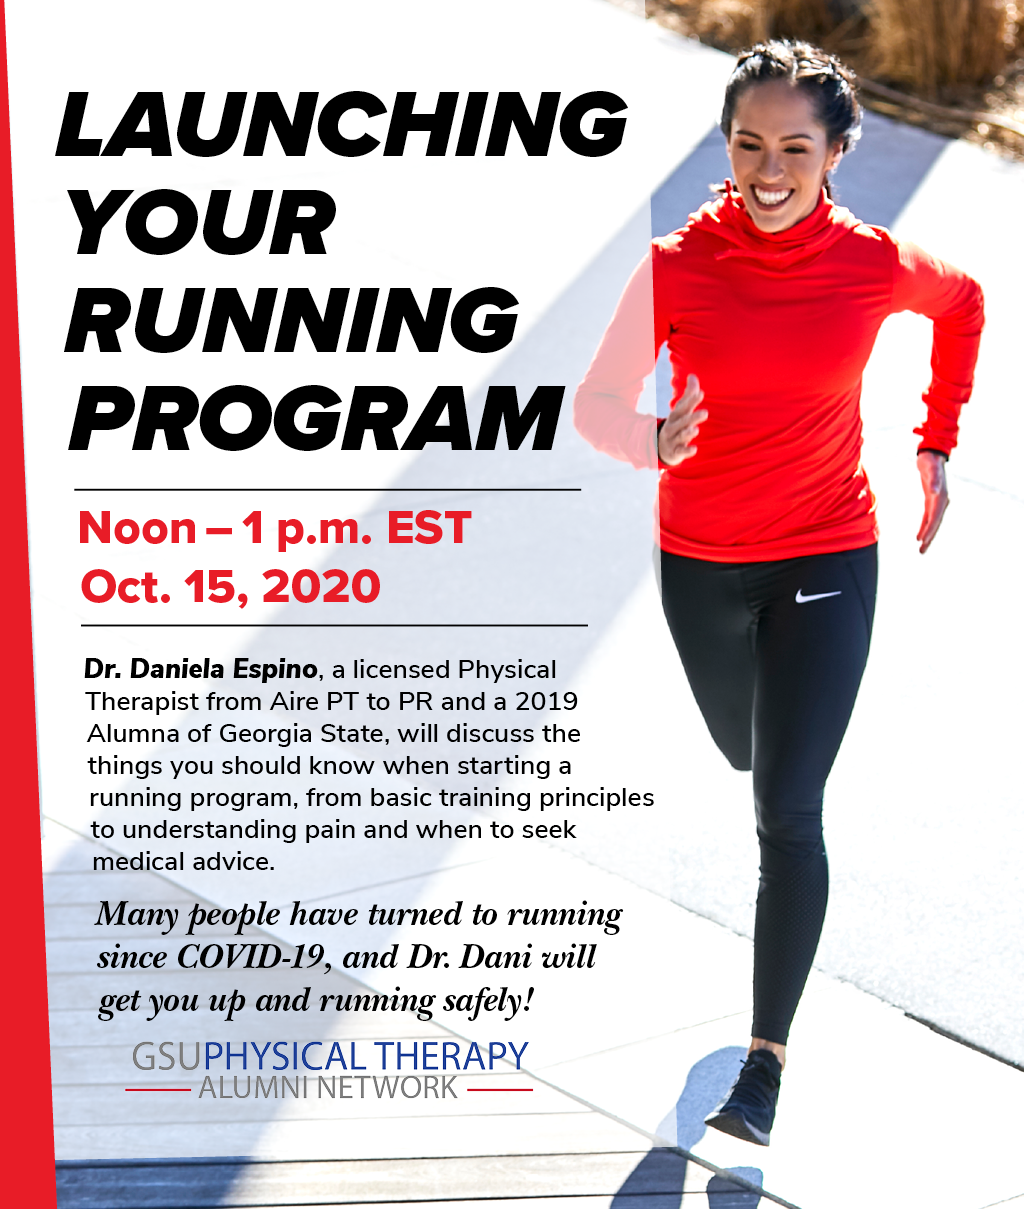 Image for Physical Therapy Network: Launching Your Running Program webinar